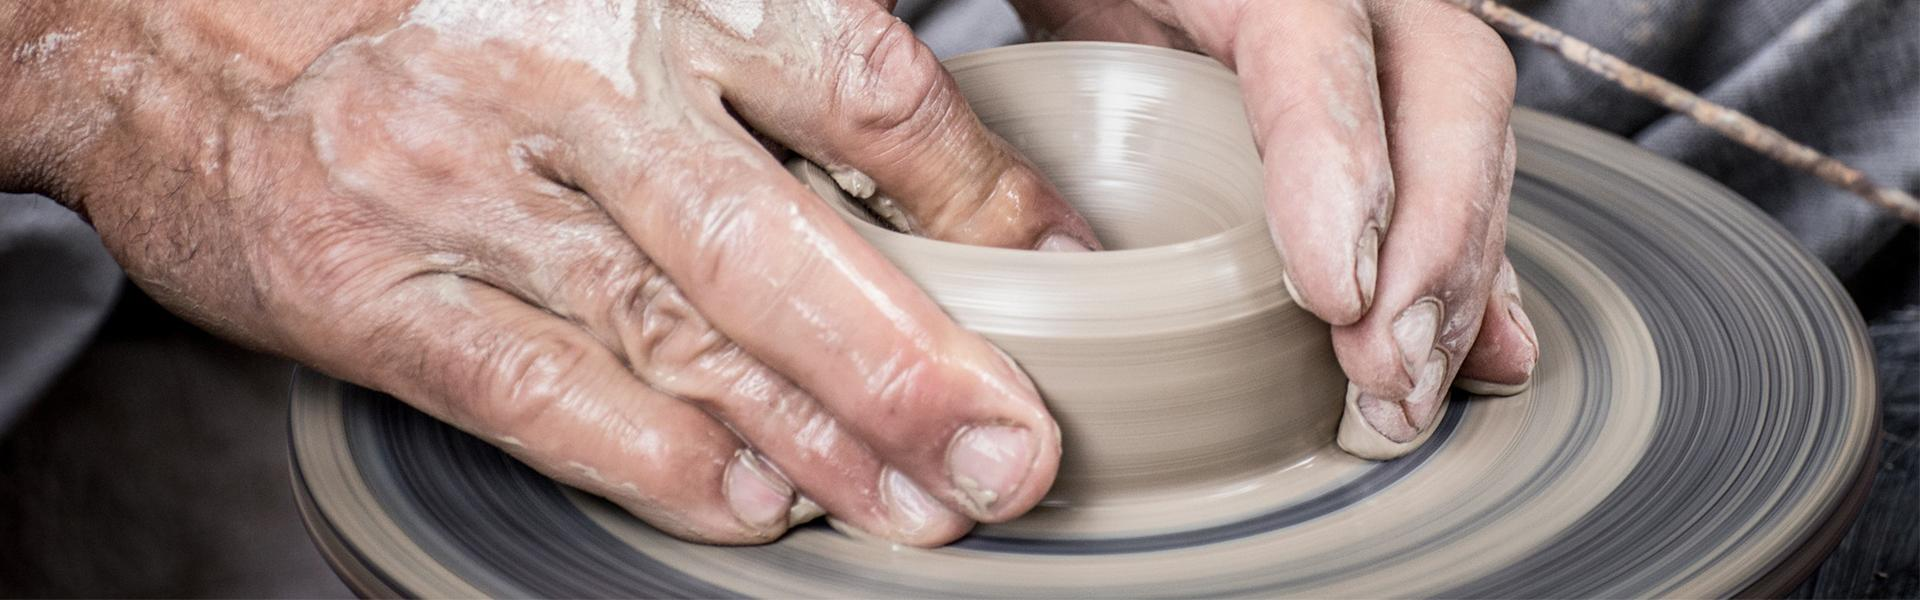 Using hand to form clay in to pottery on potter's wheel